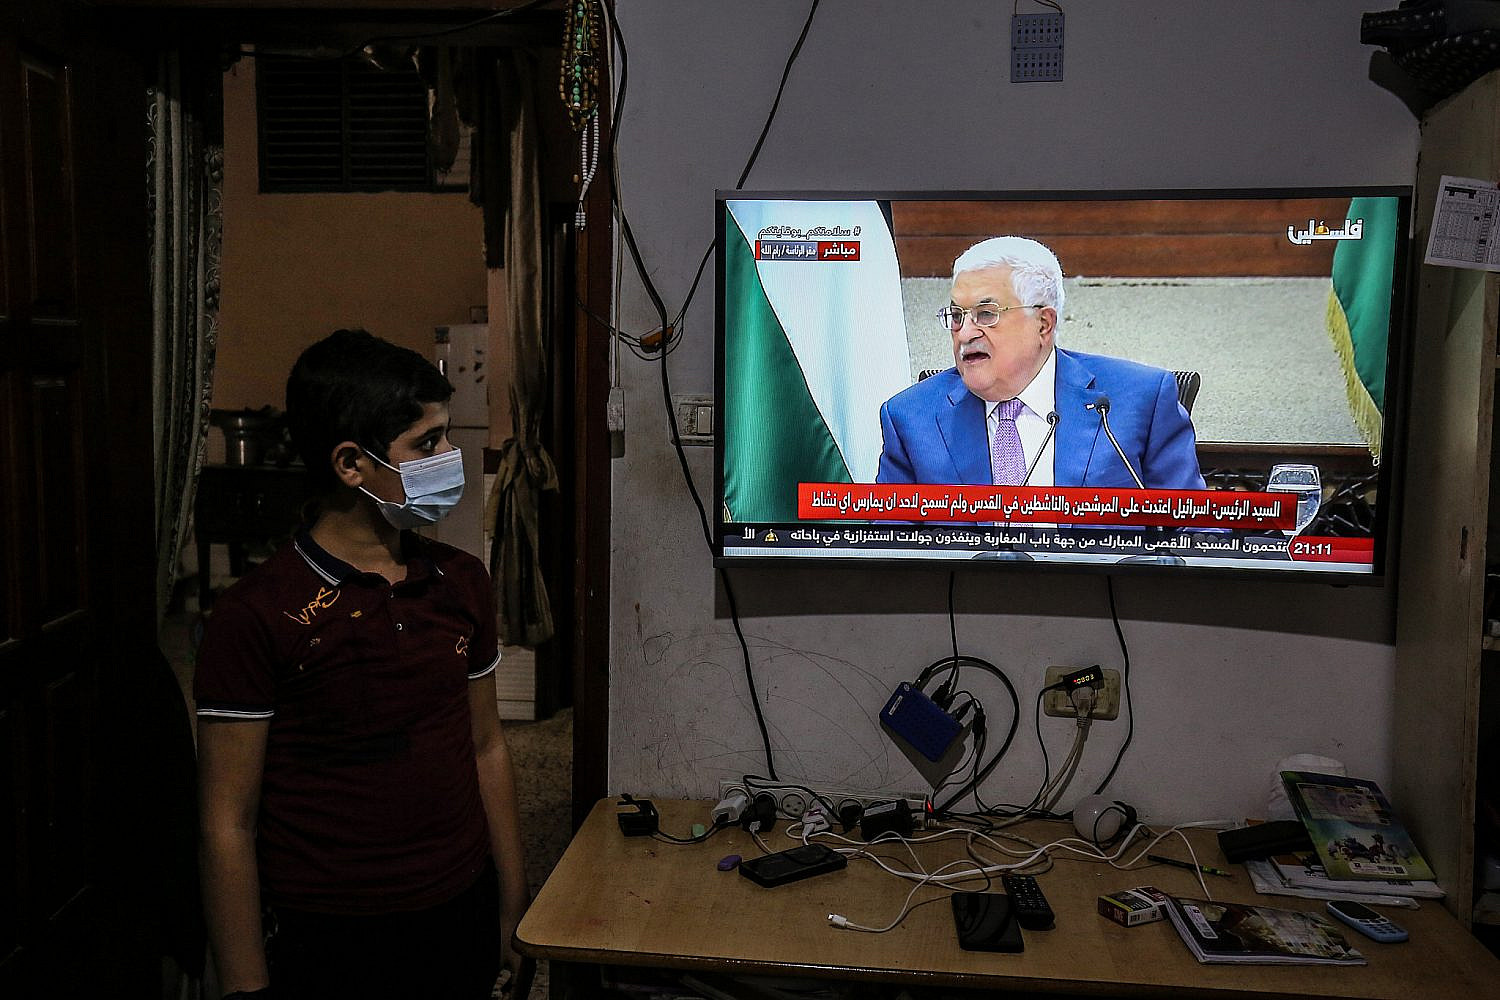 A Palestinian family watch the speech of President Mahmoud Abbas regarding the Palestinian elections at their home in Rafah, in the Gaza Strip, April 29, 2021. (Abed Rahim Khatib/Flash90)